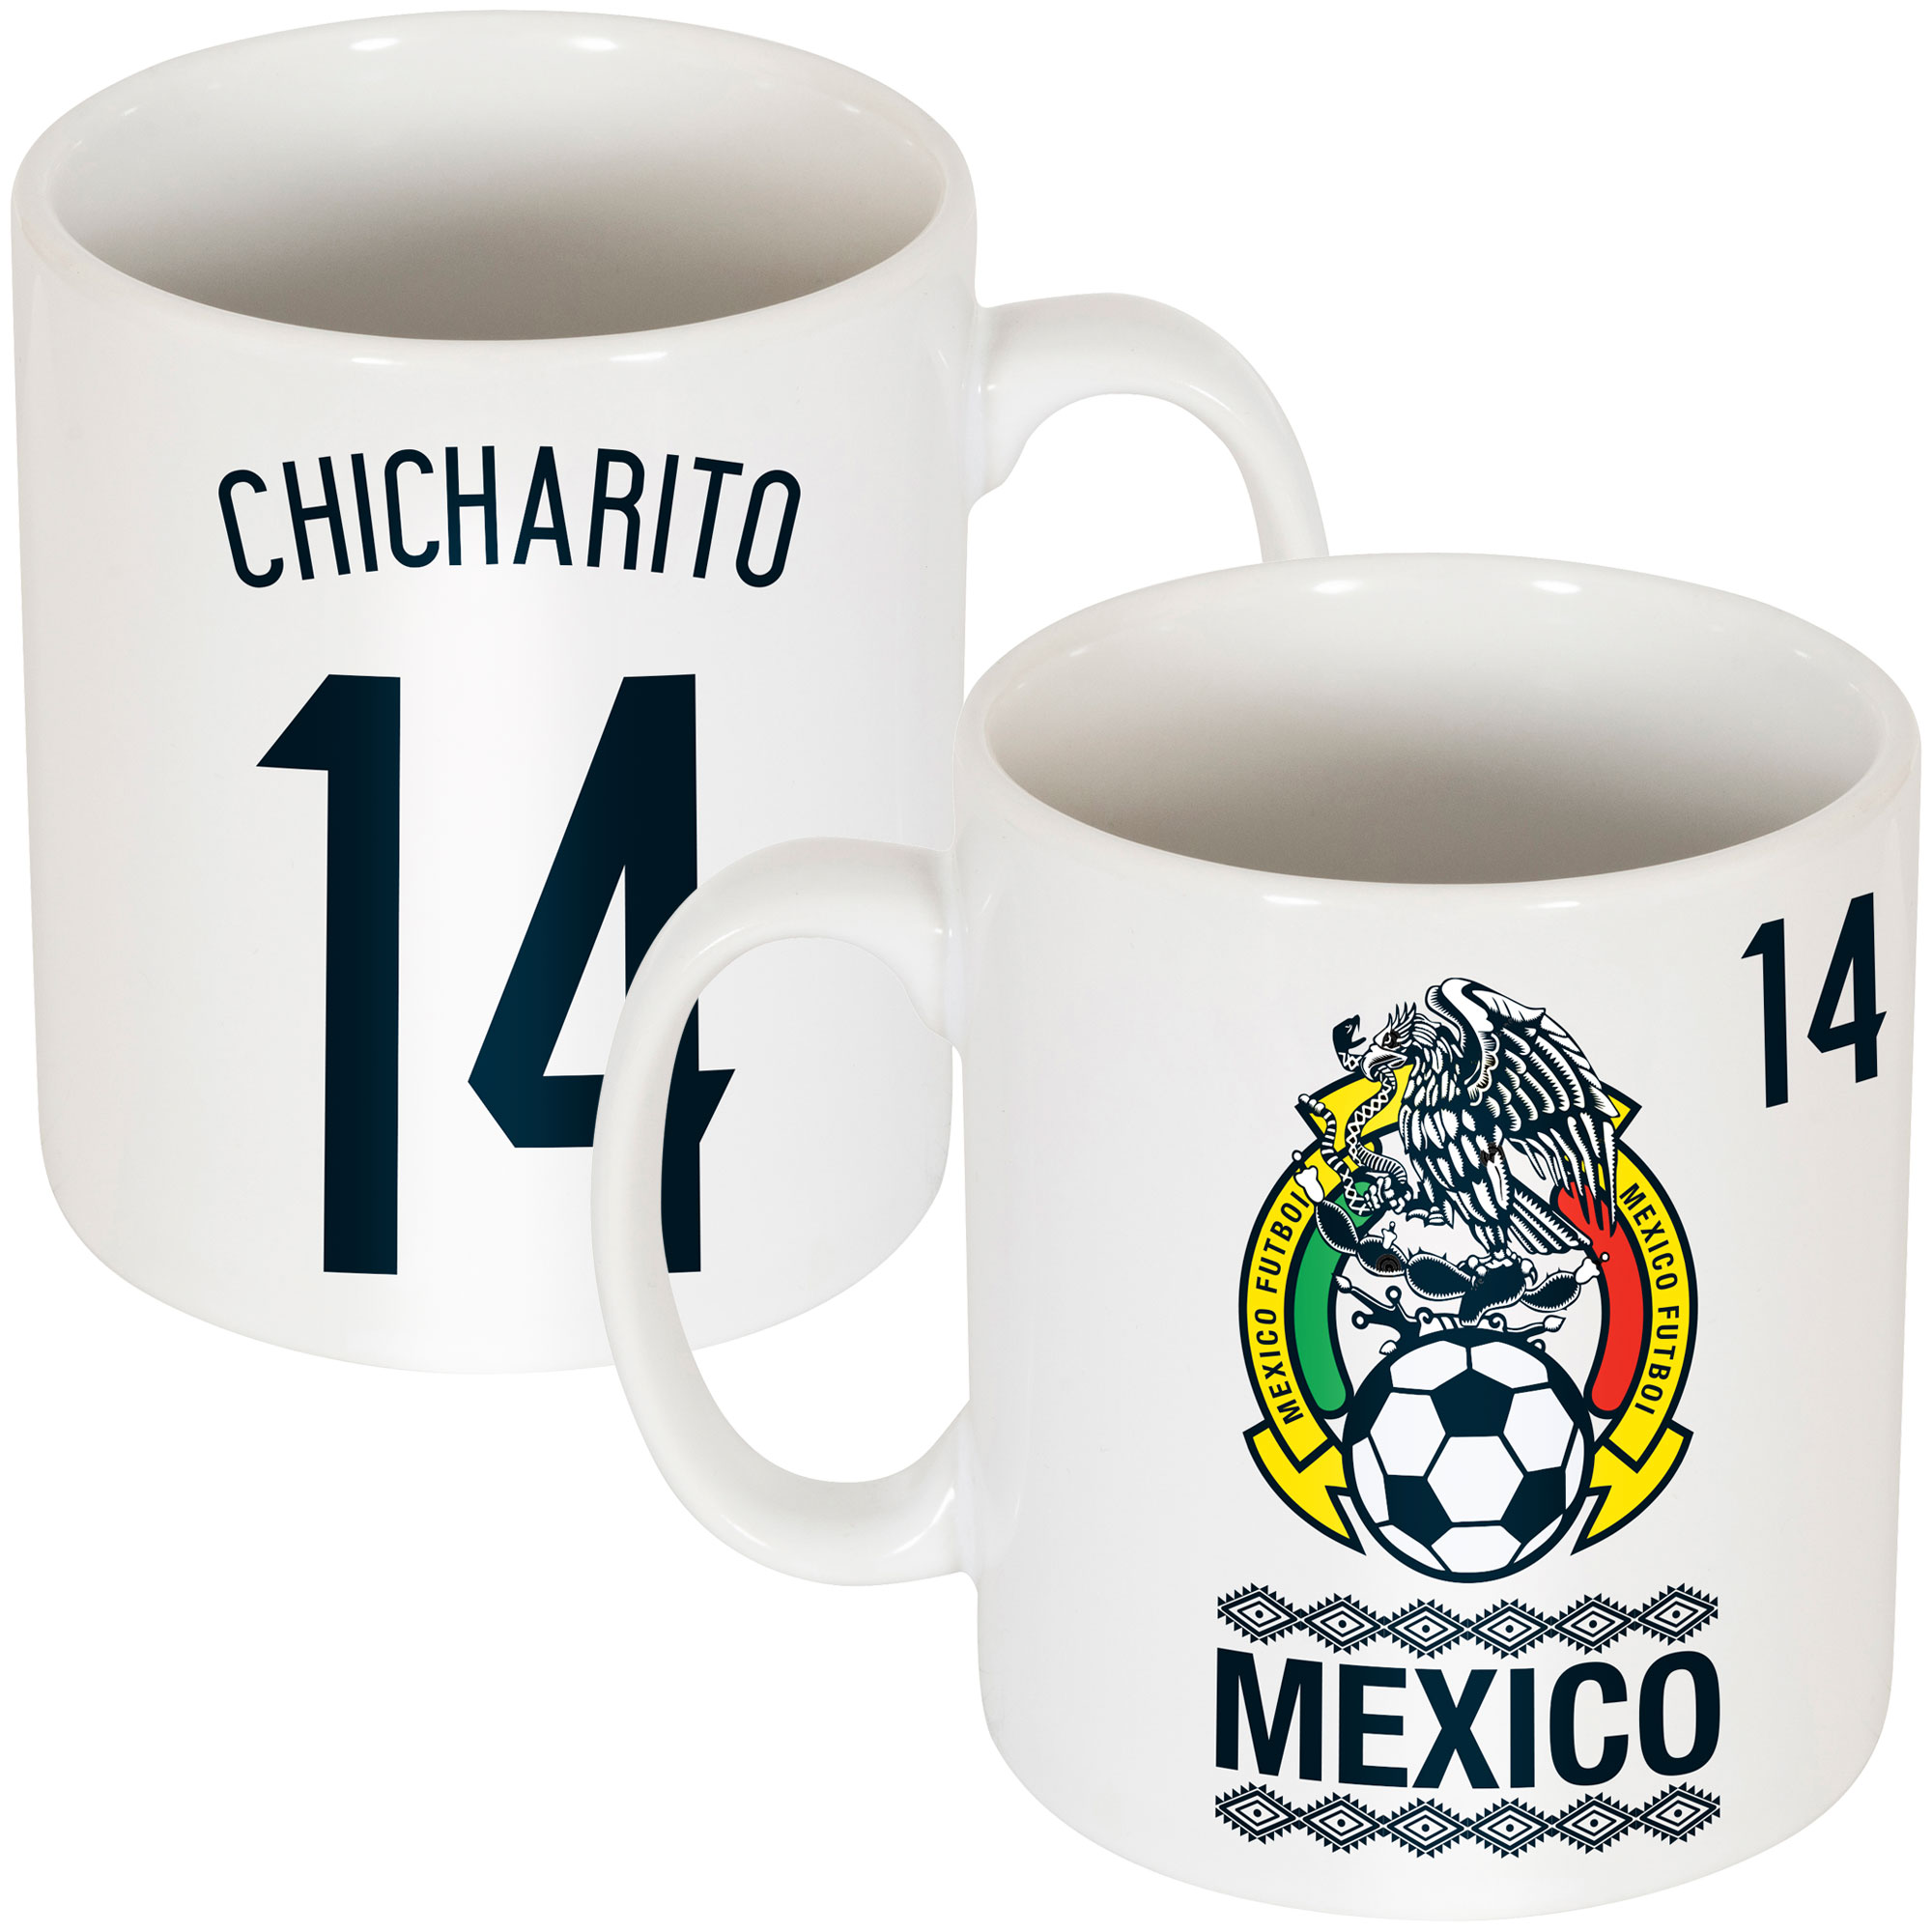 Mexico Chicharito Mug - OS